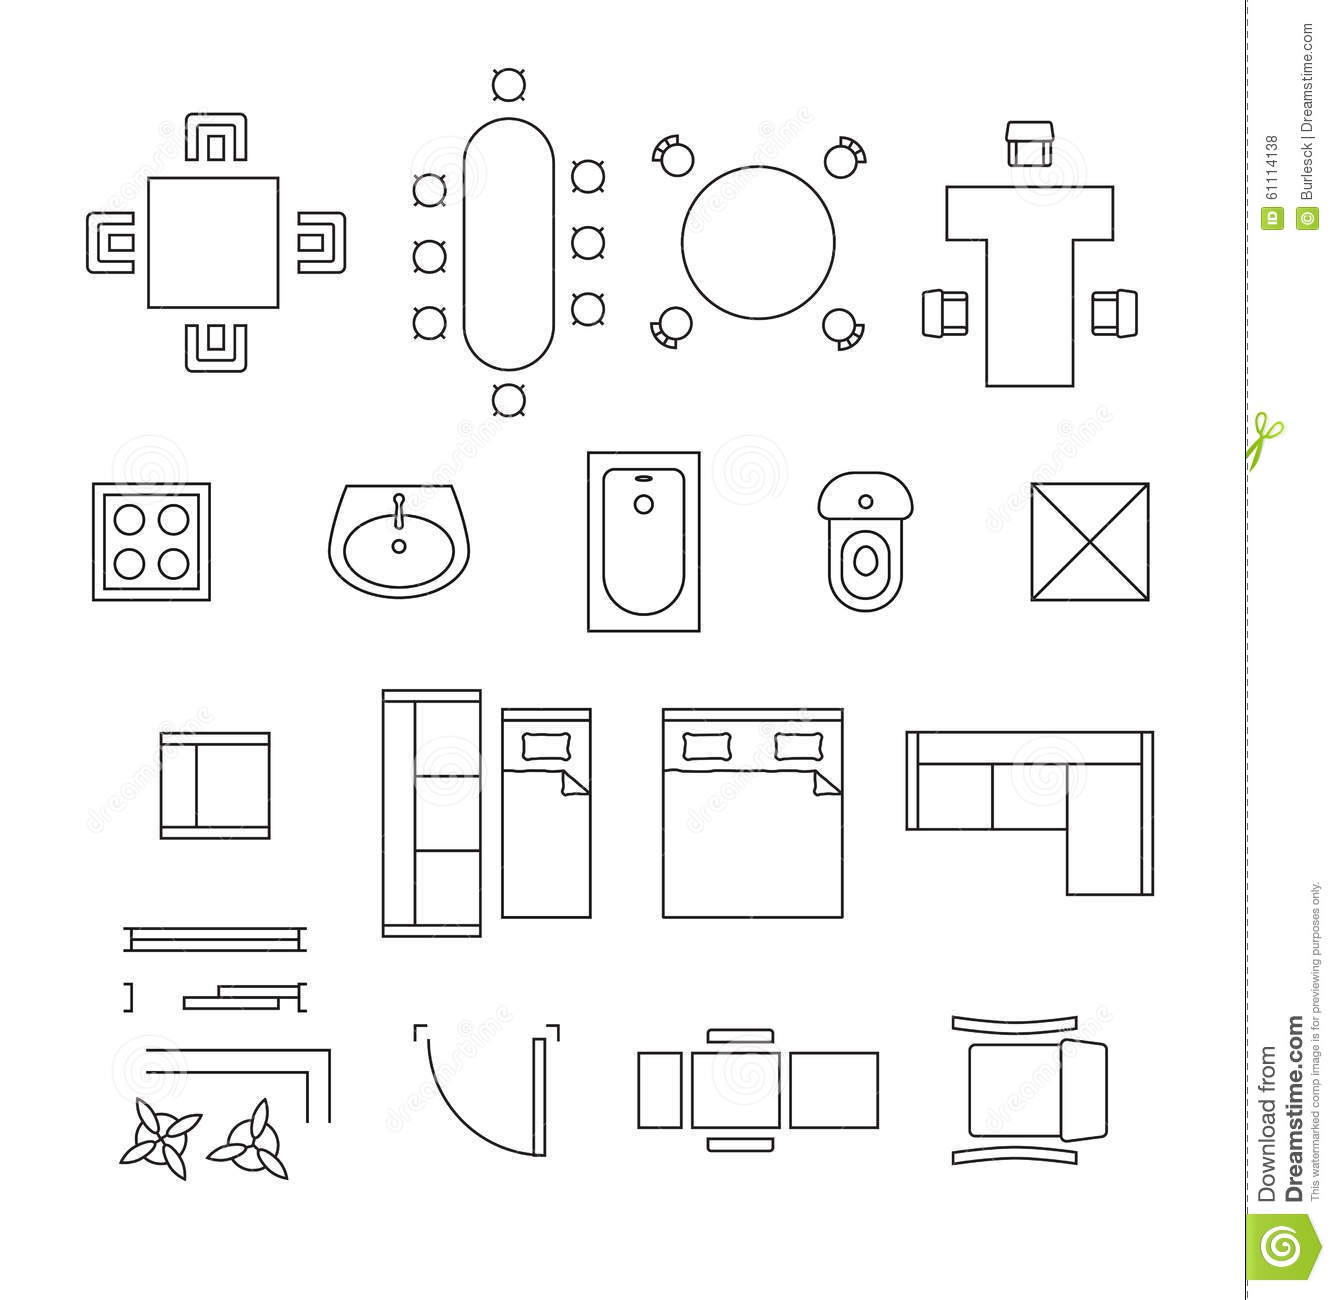 Clip art floor plan symbols clipground floor plan clipart furniture buycottarizona